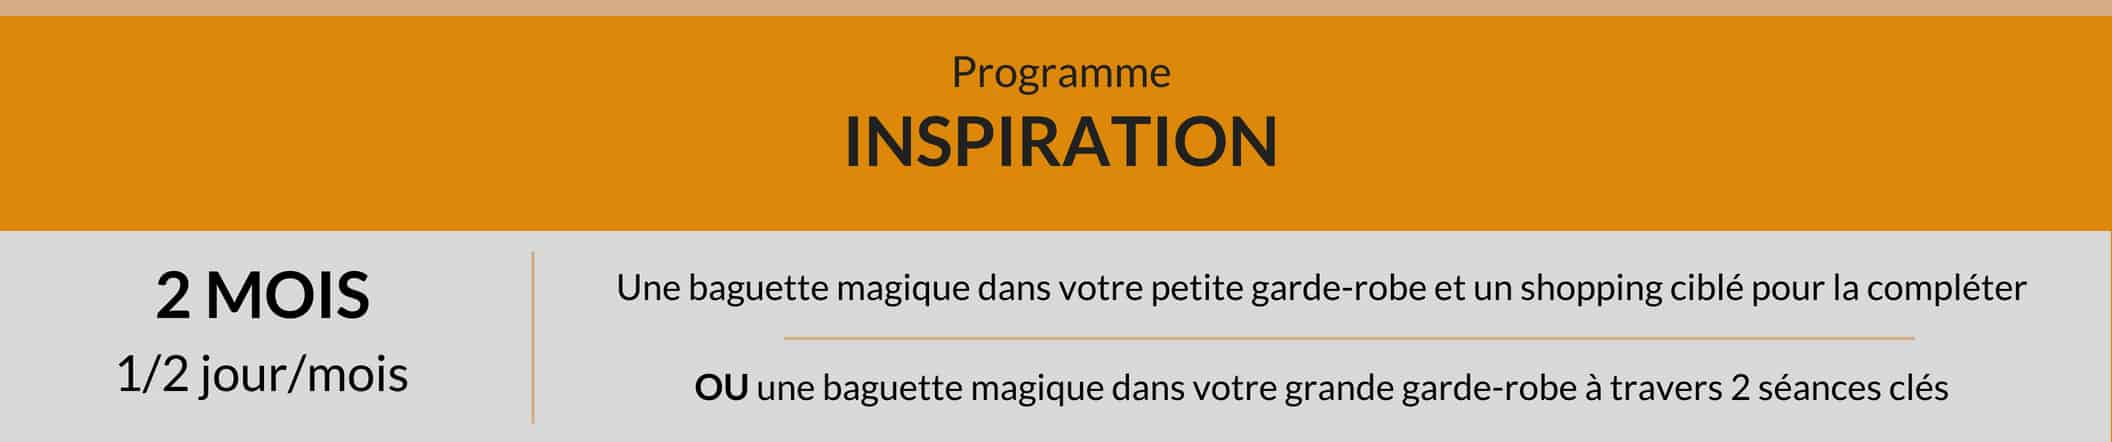 Programme Inspiration, conseil en style et accompagnement shopping